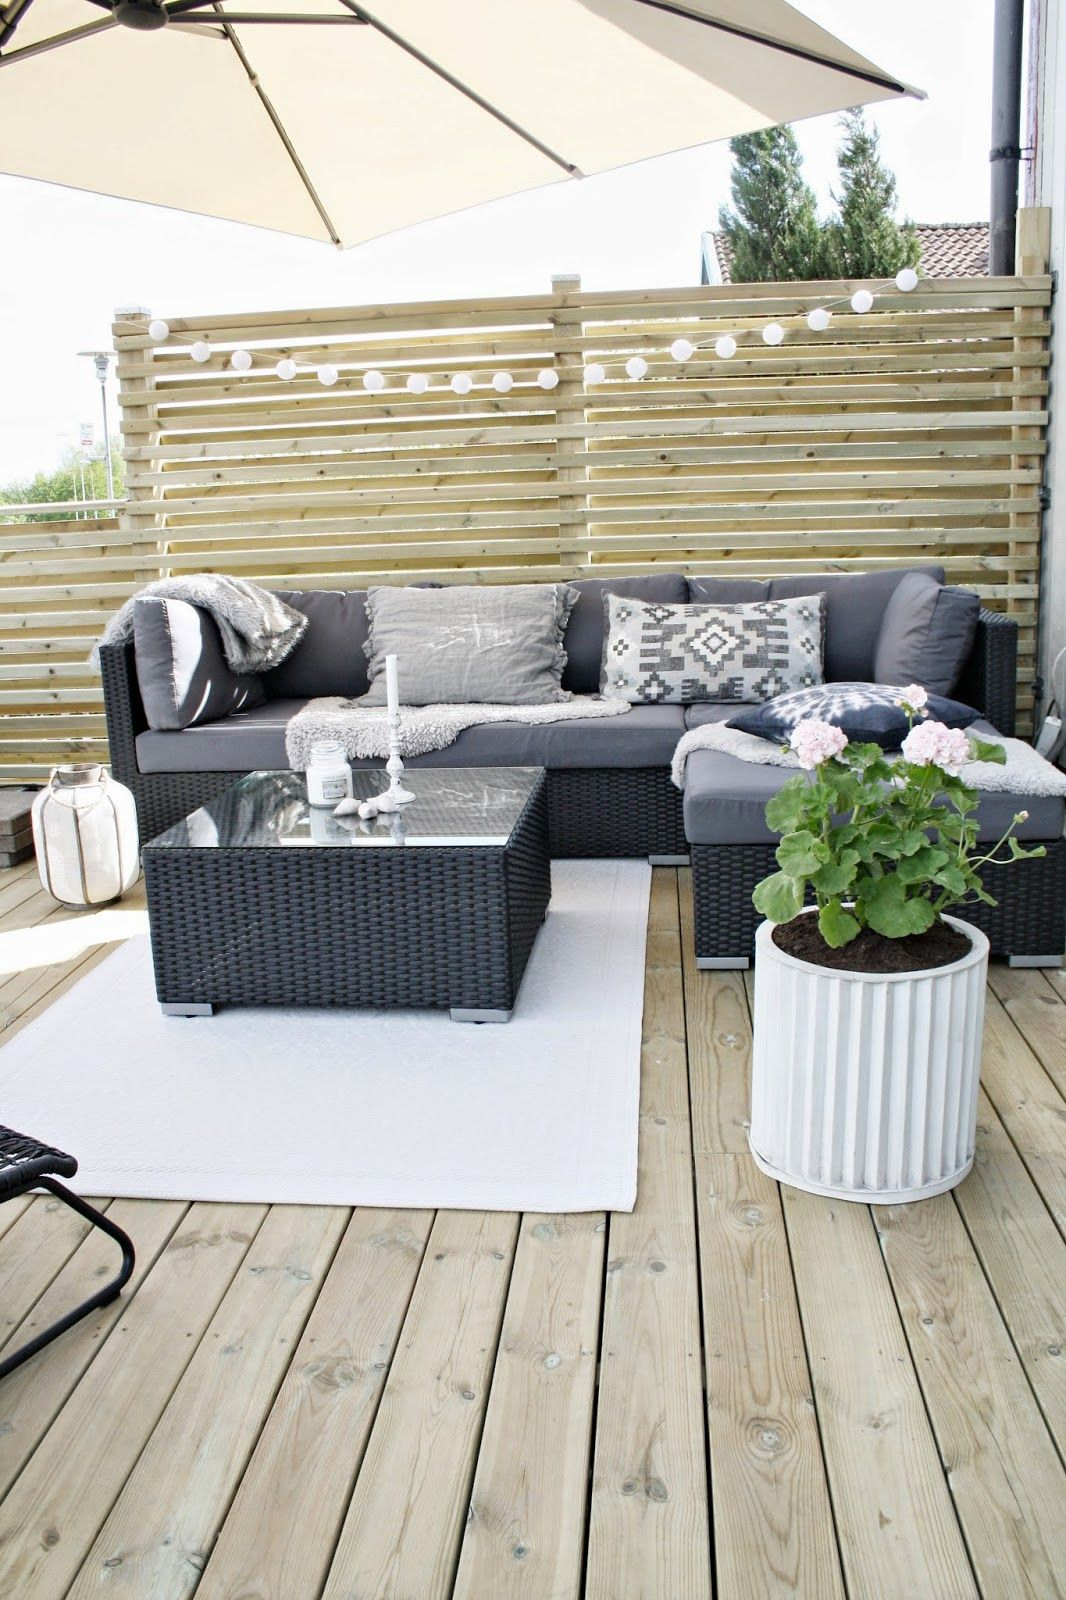 A good-looking patio. Great for beach homes | Decor | Pinterest ...